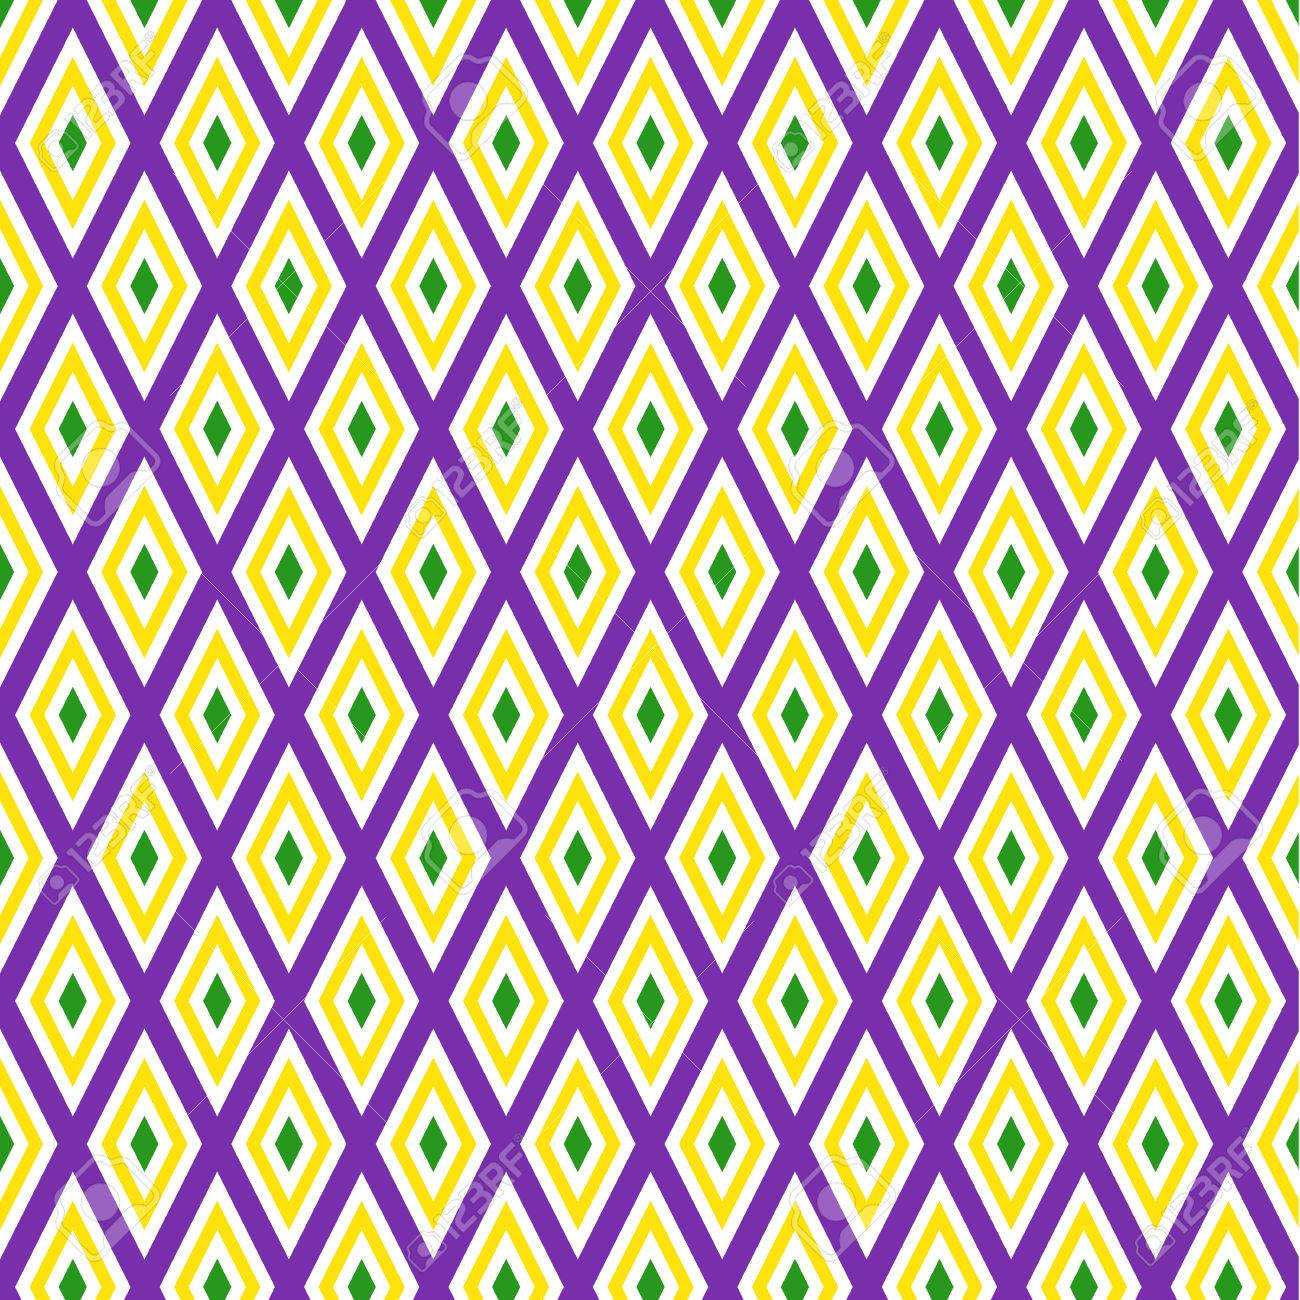 Mardi Gras Background Royalty Cliparts Vectors And Stock 1300x1300